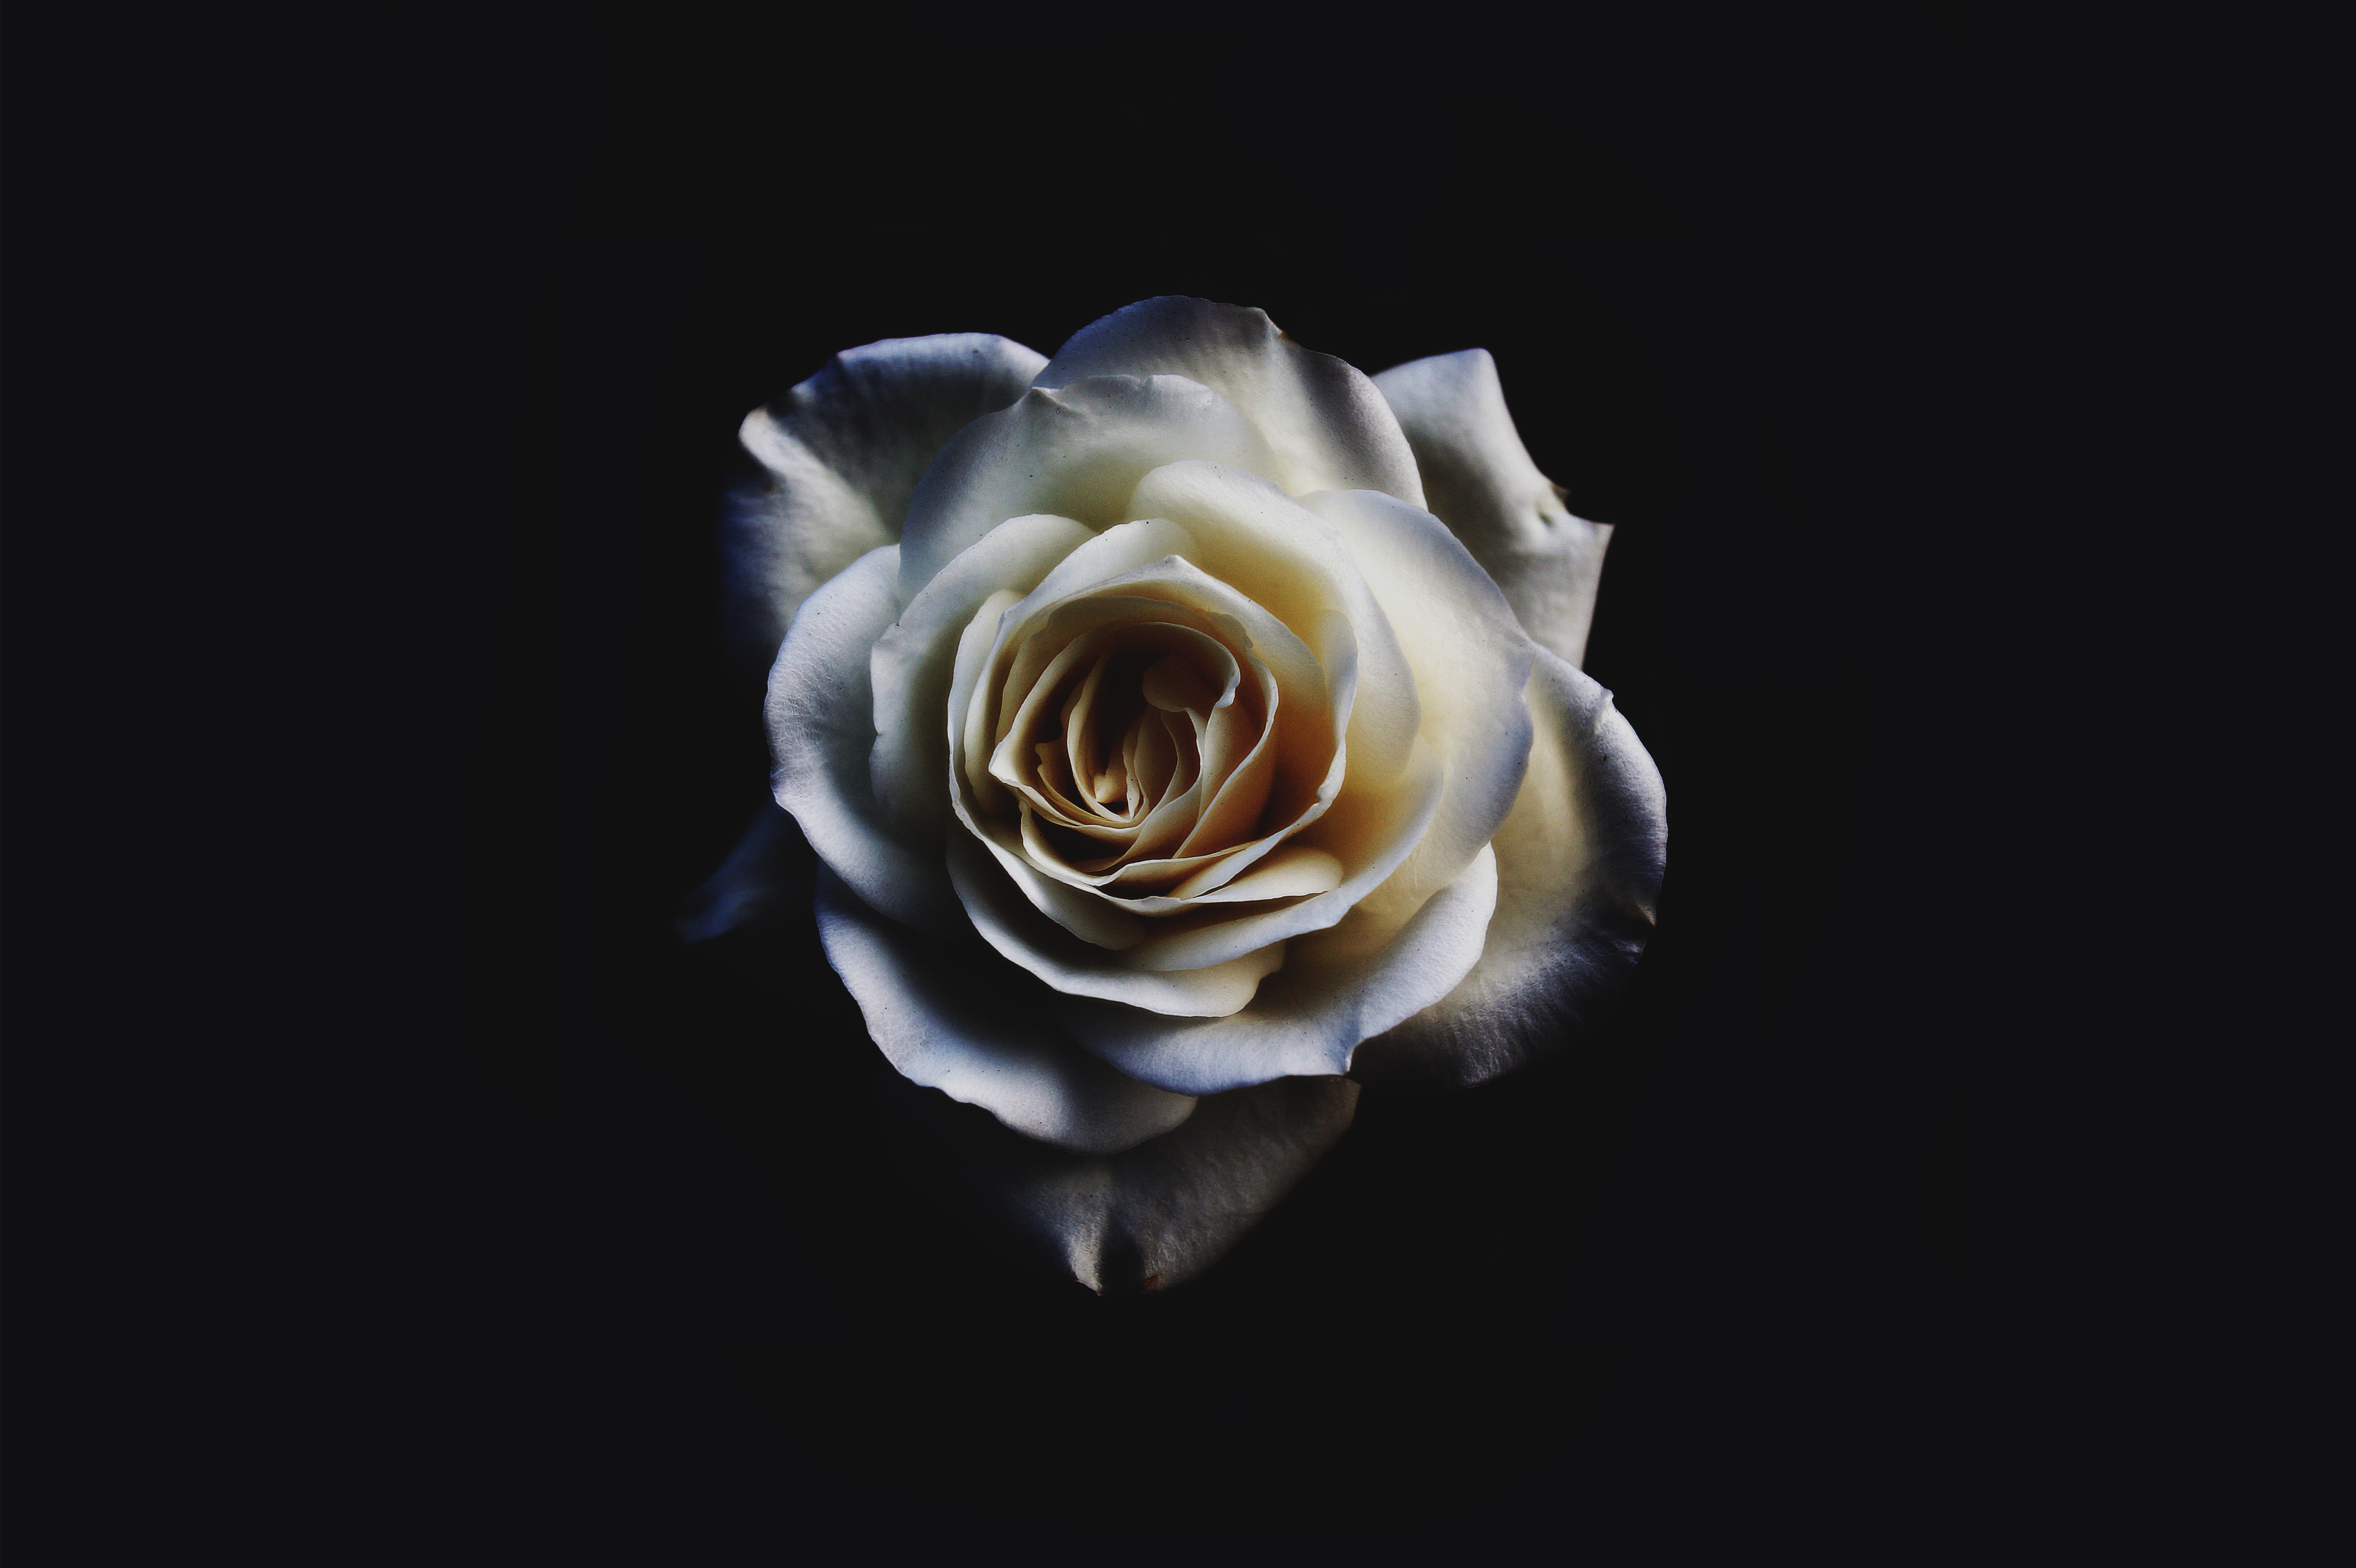 closeup of white rose